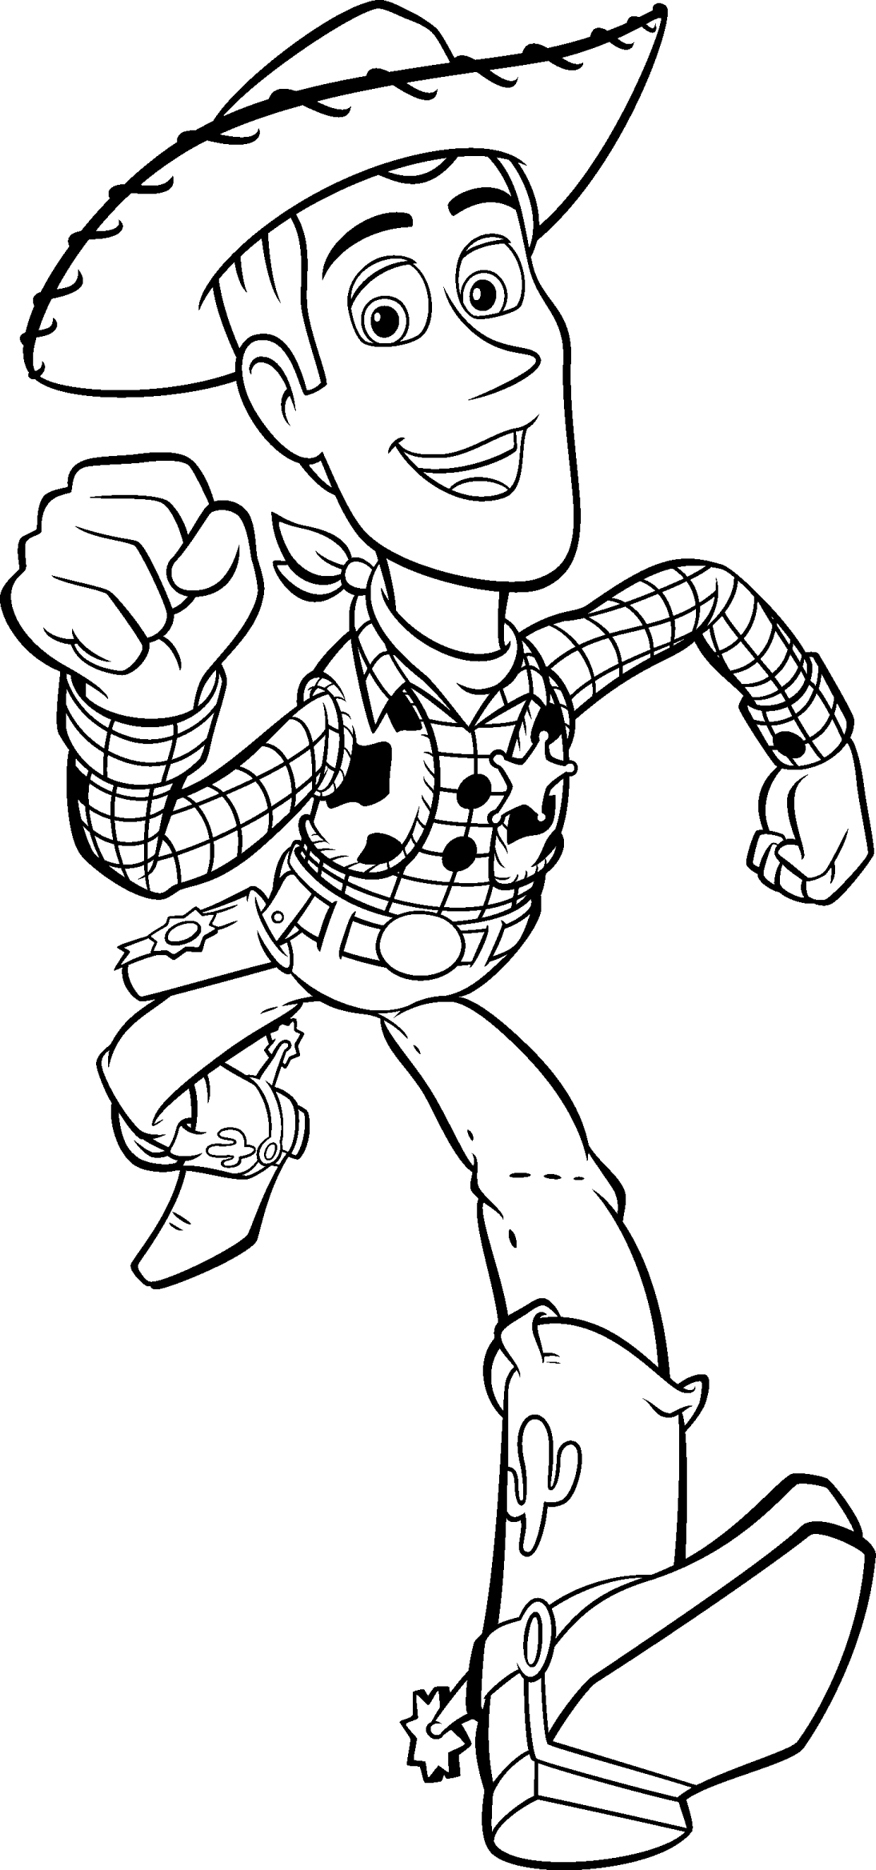 876x1870 Bluebonnet Flower Coloring Page For Glum With Regard